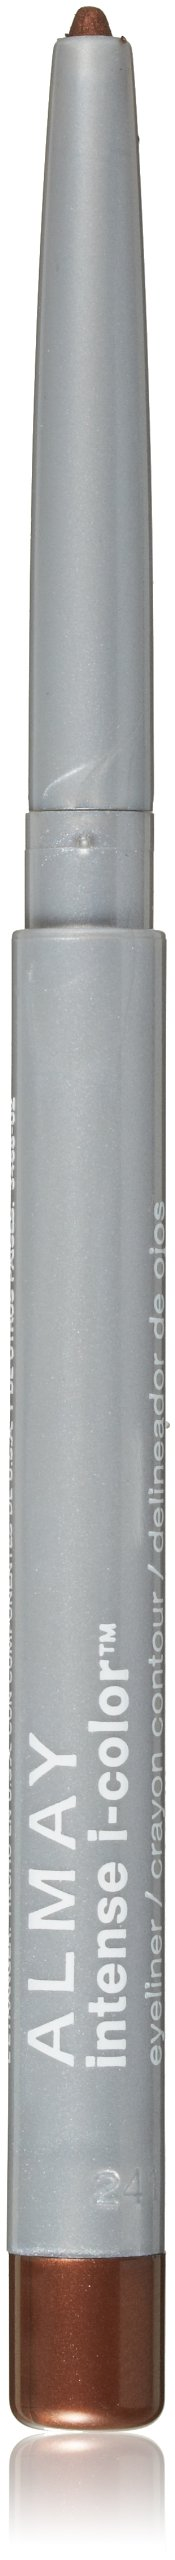 Almay intense i-color Eyeliner, Bring Out the Blue, Brown Topaz 002, 0.009-Ounce Packages (Pack of 2)